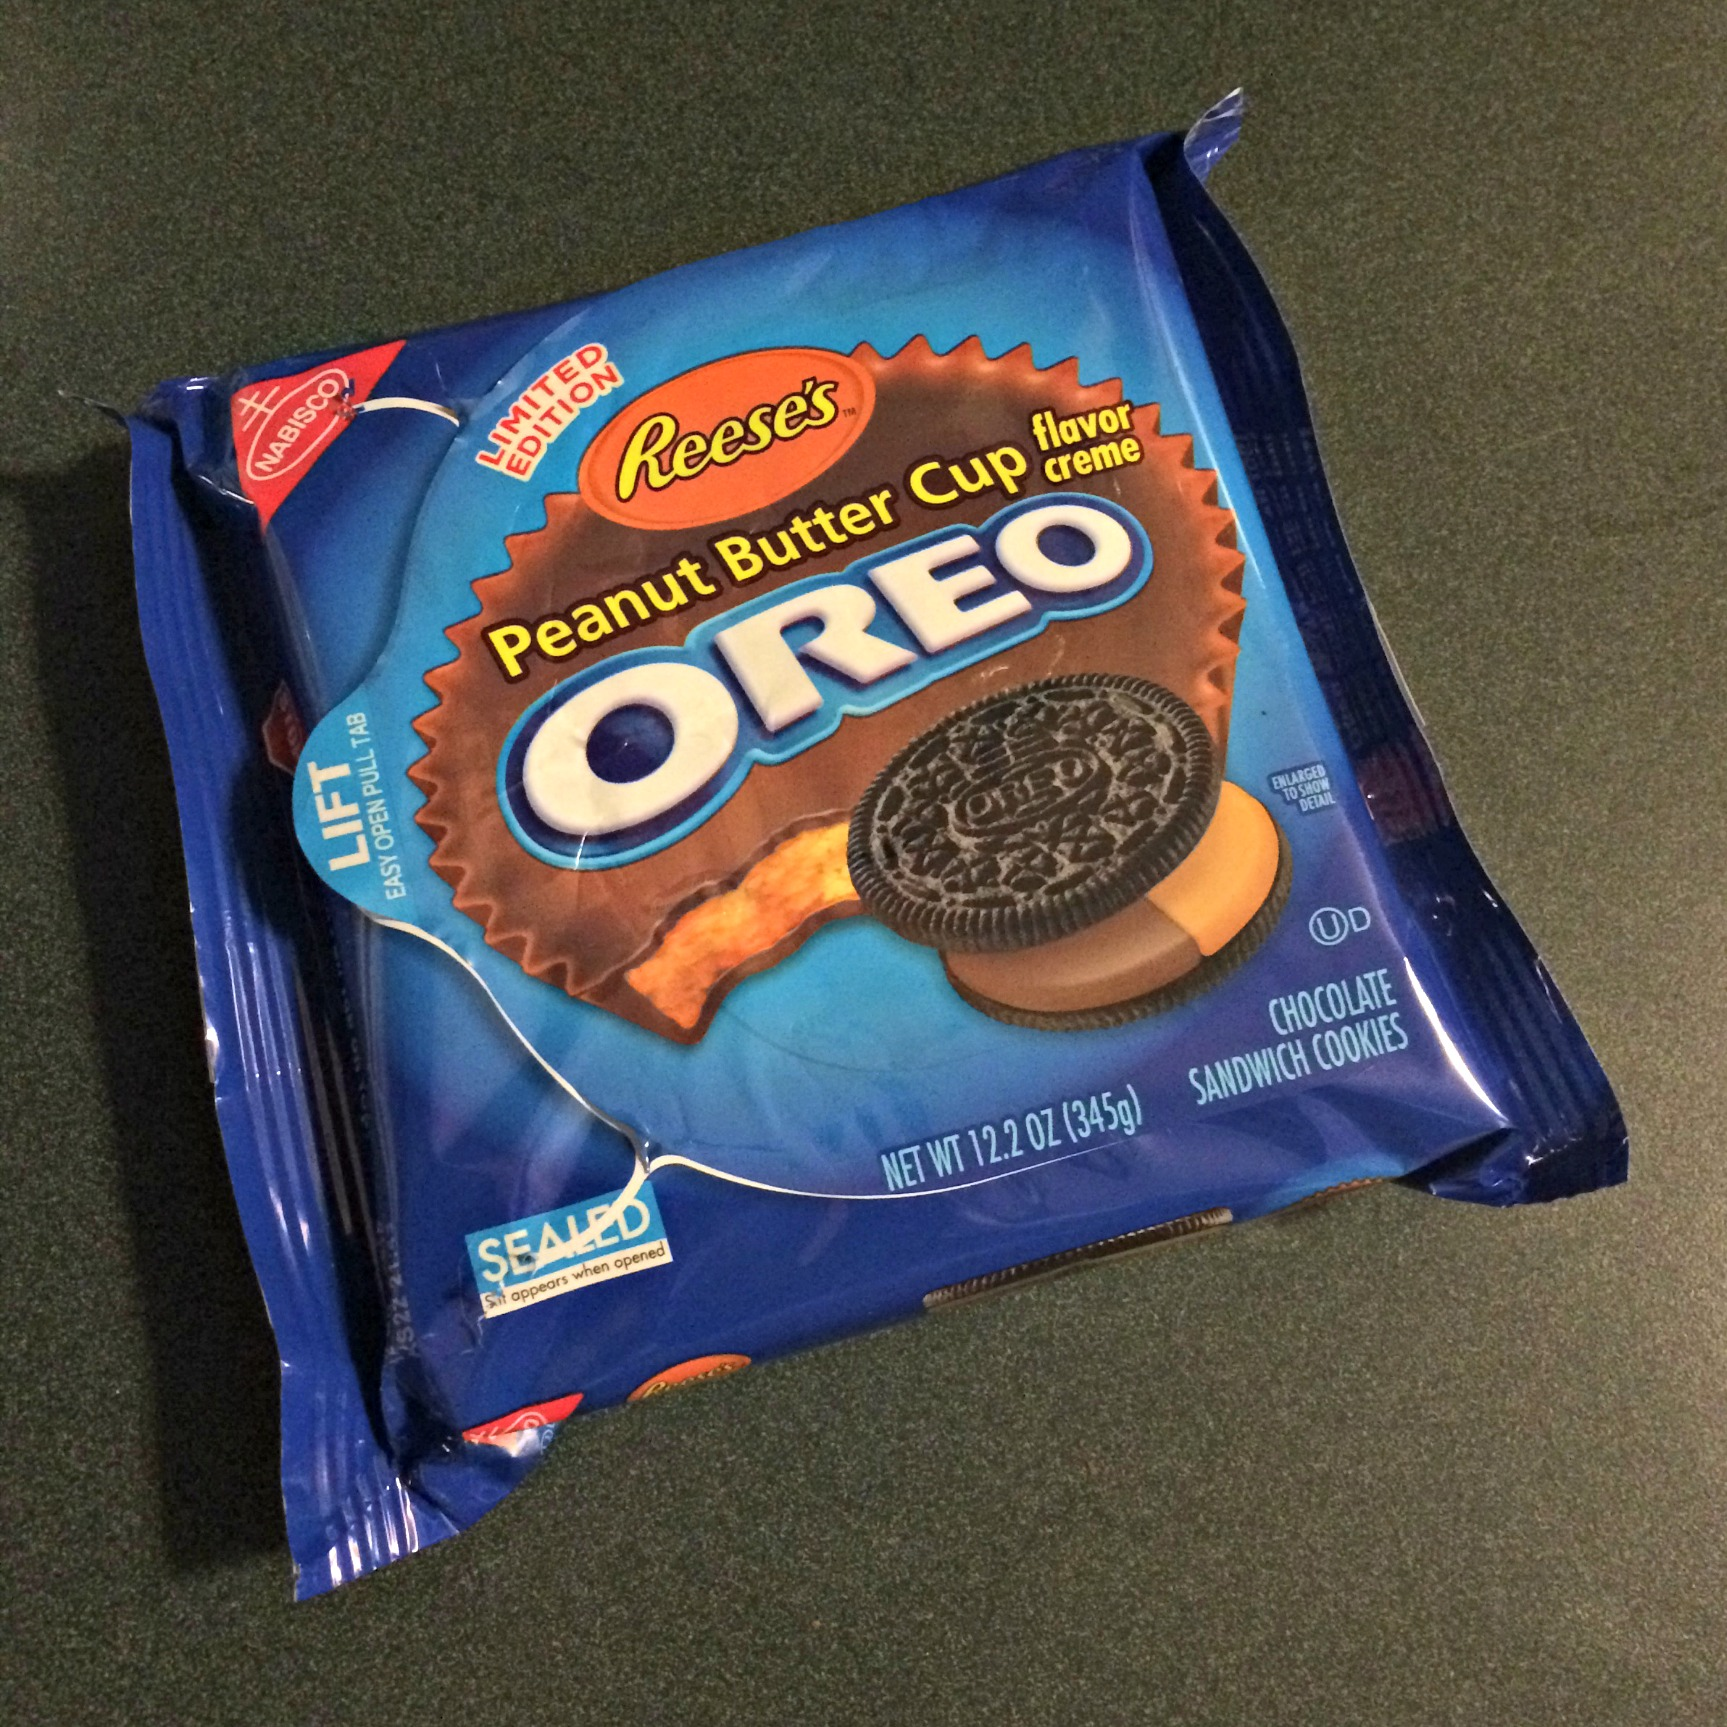 Reese's peanut butter cup oreo